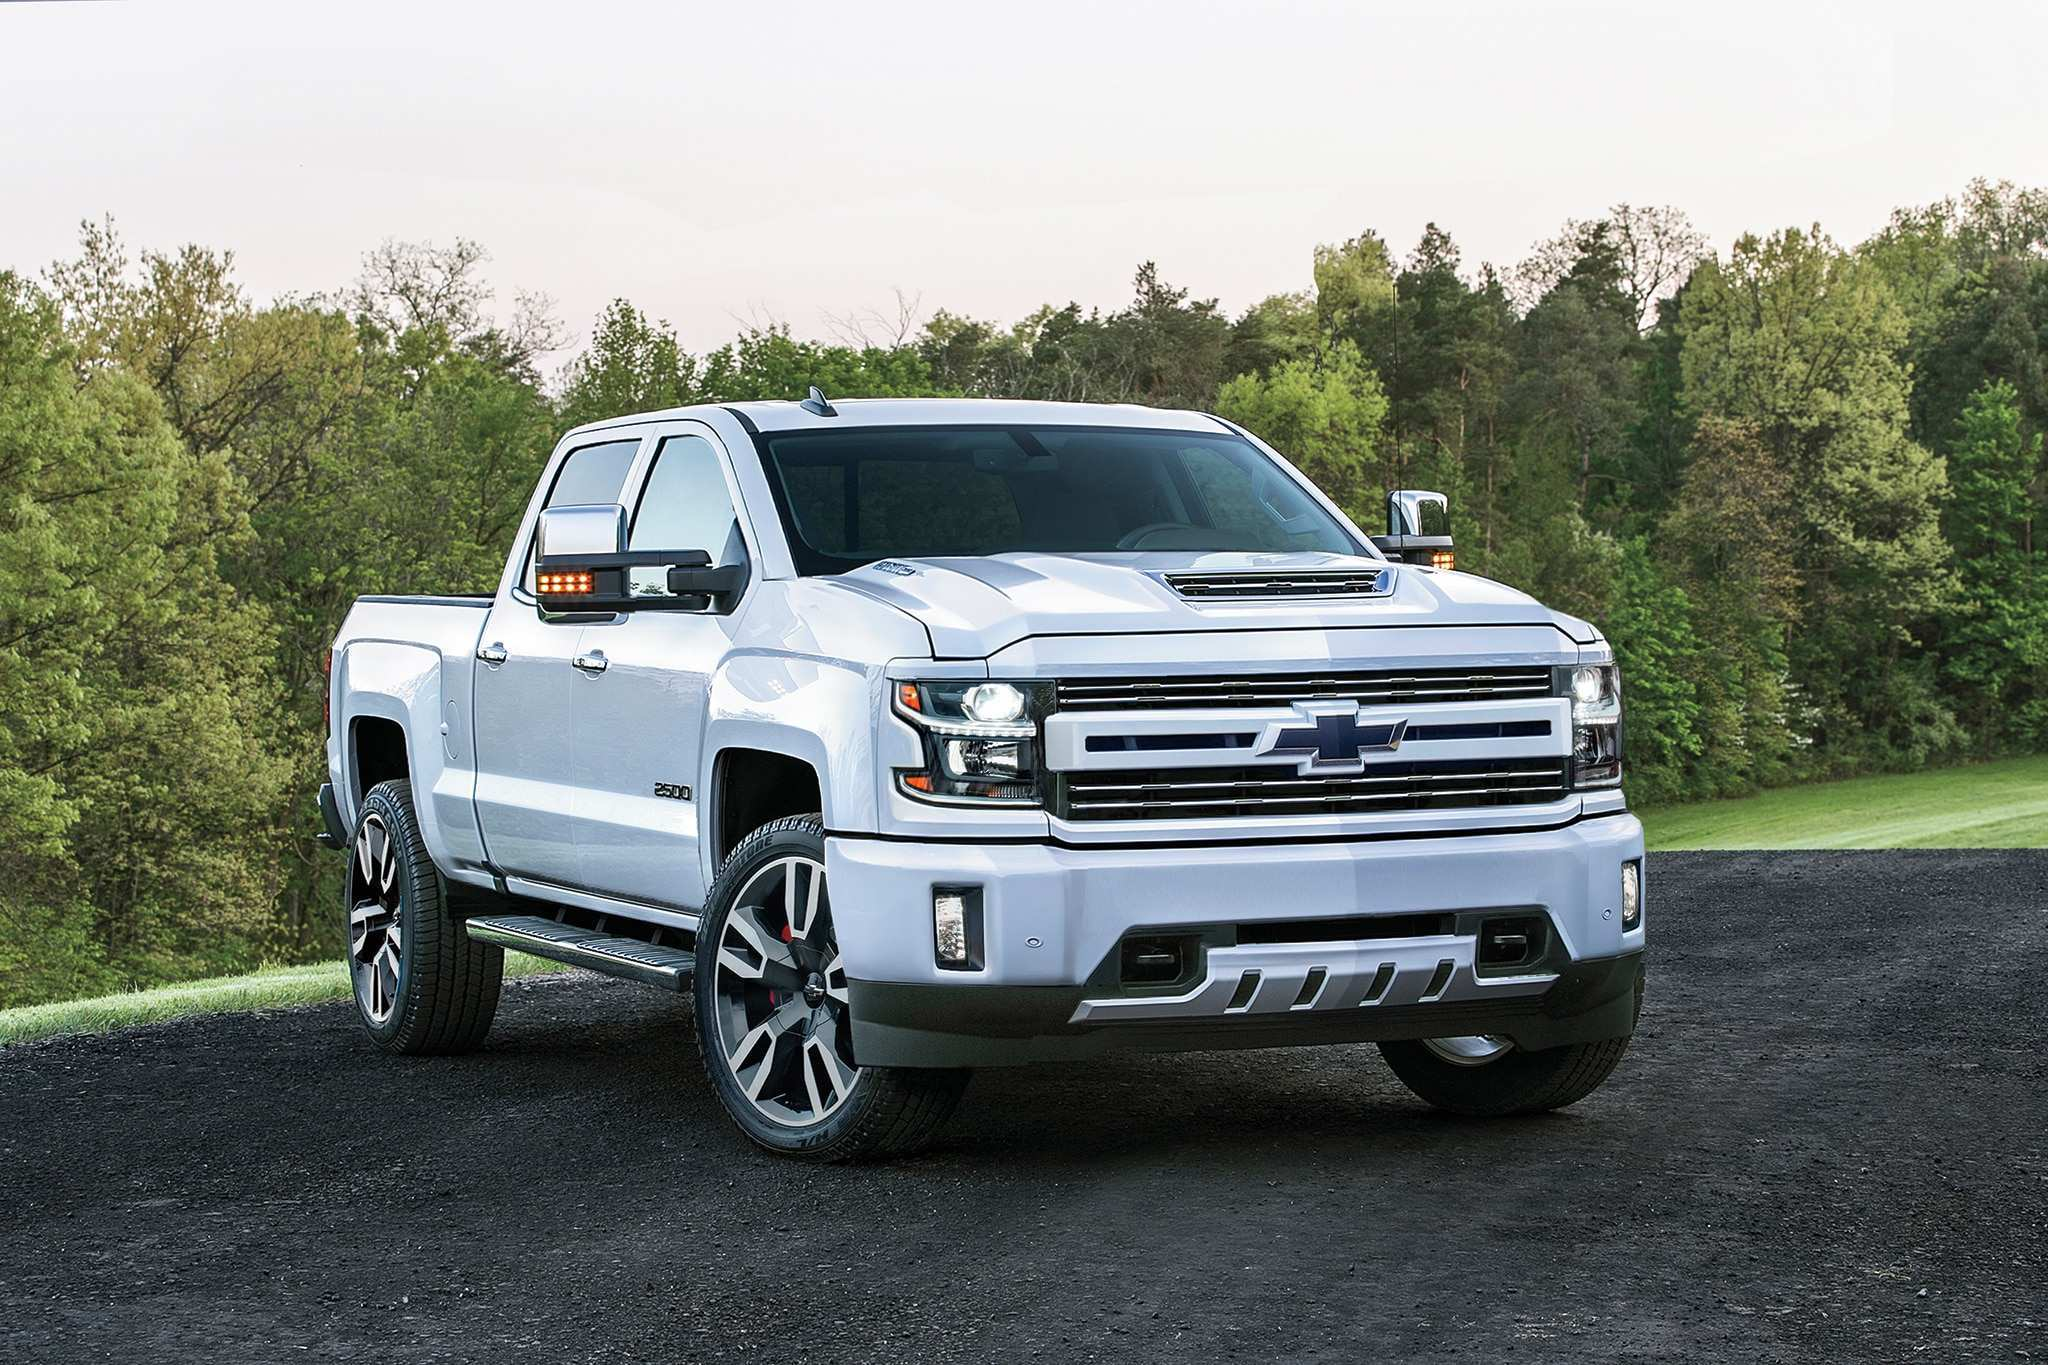 53 Best Review 2019 Chevrolet 2500 Pickup Overview for 2019 Chevrolet 2500 Pickup